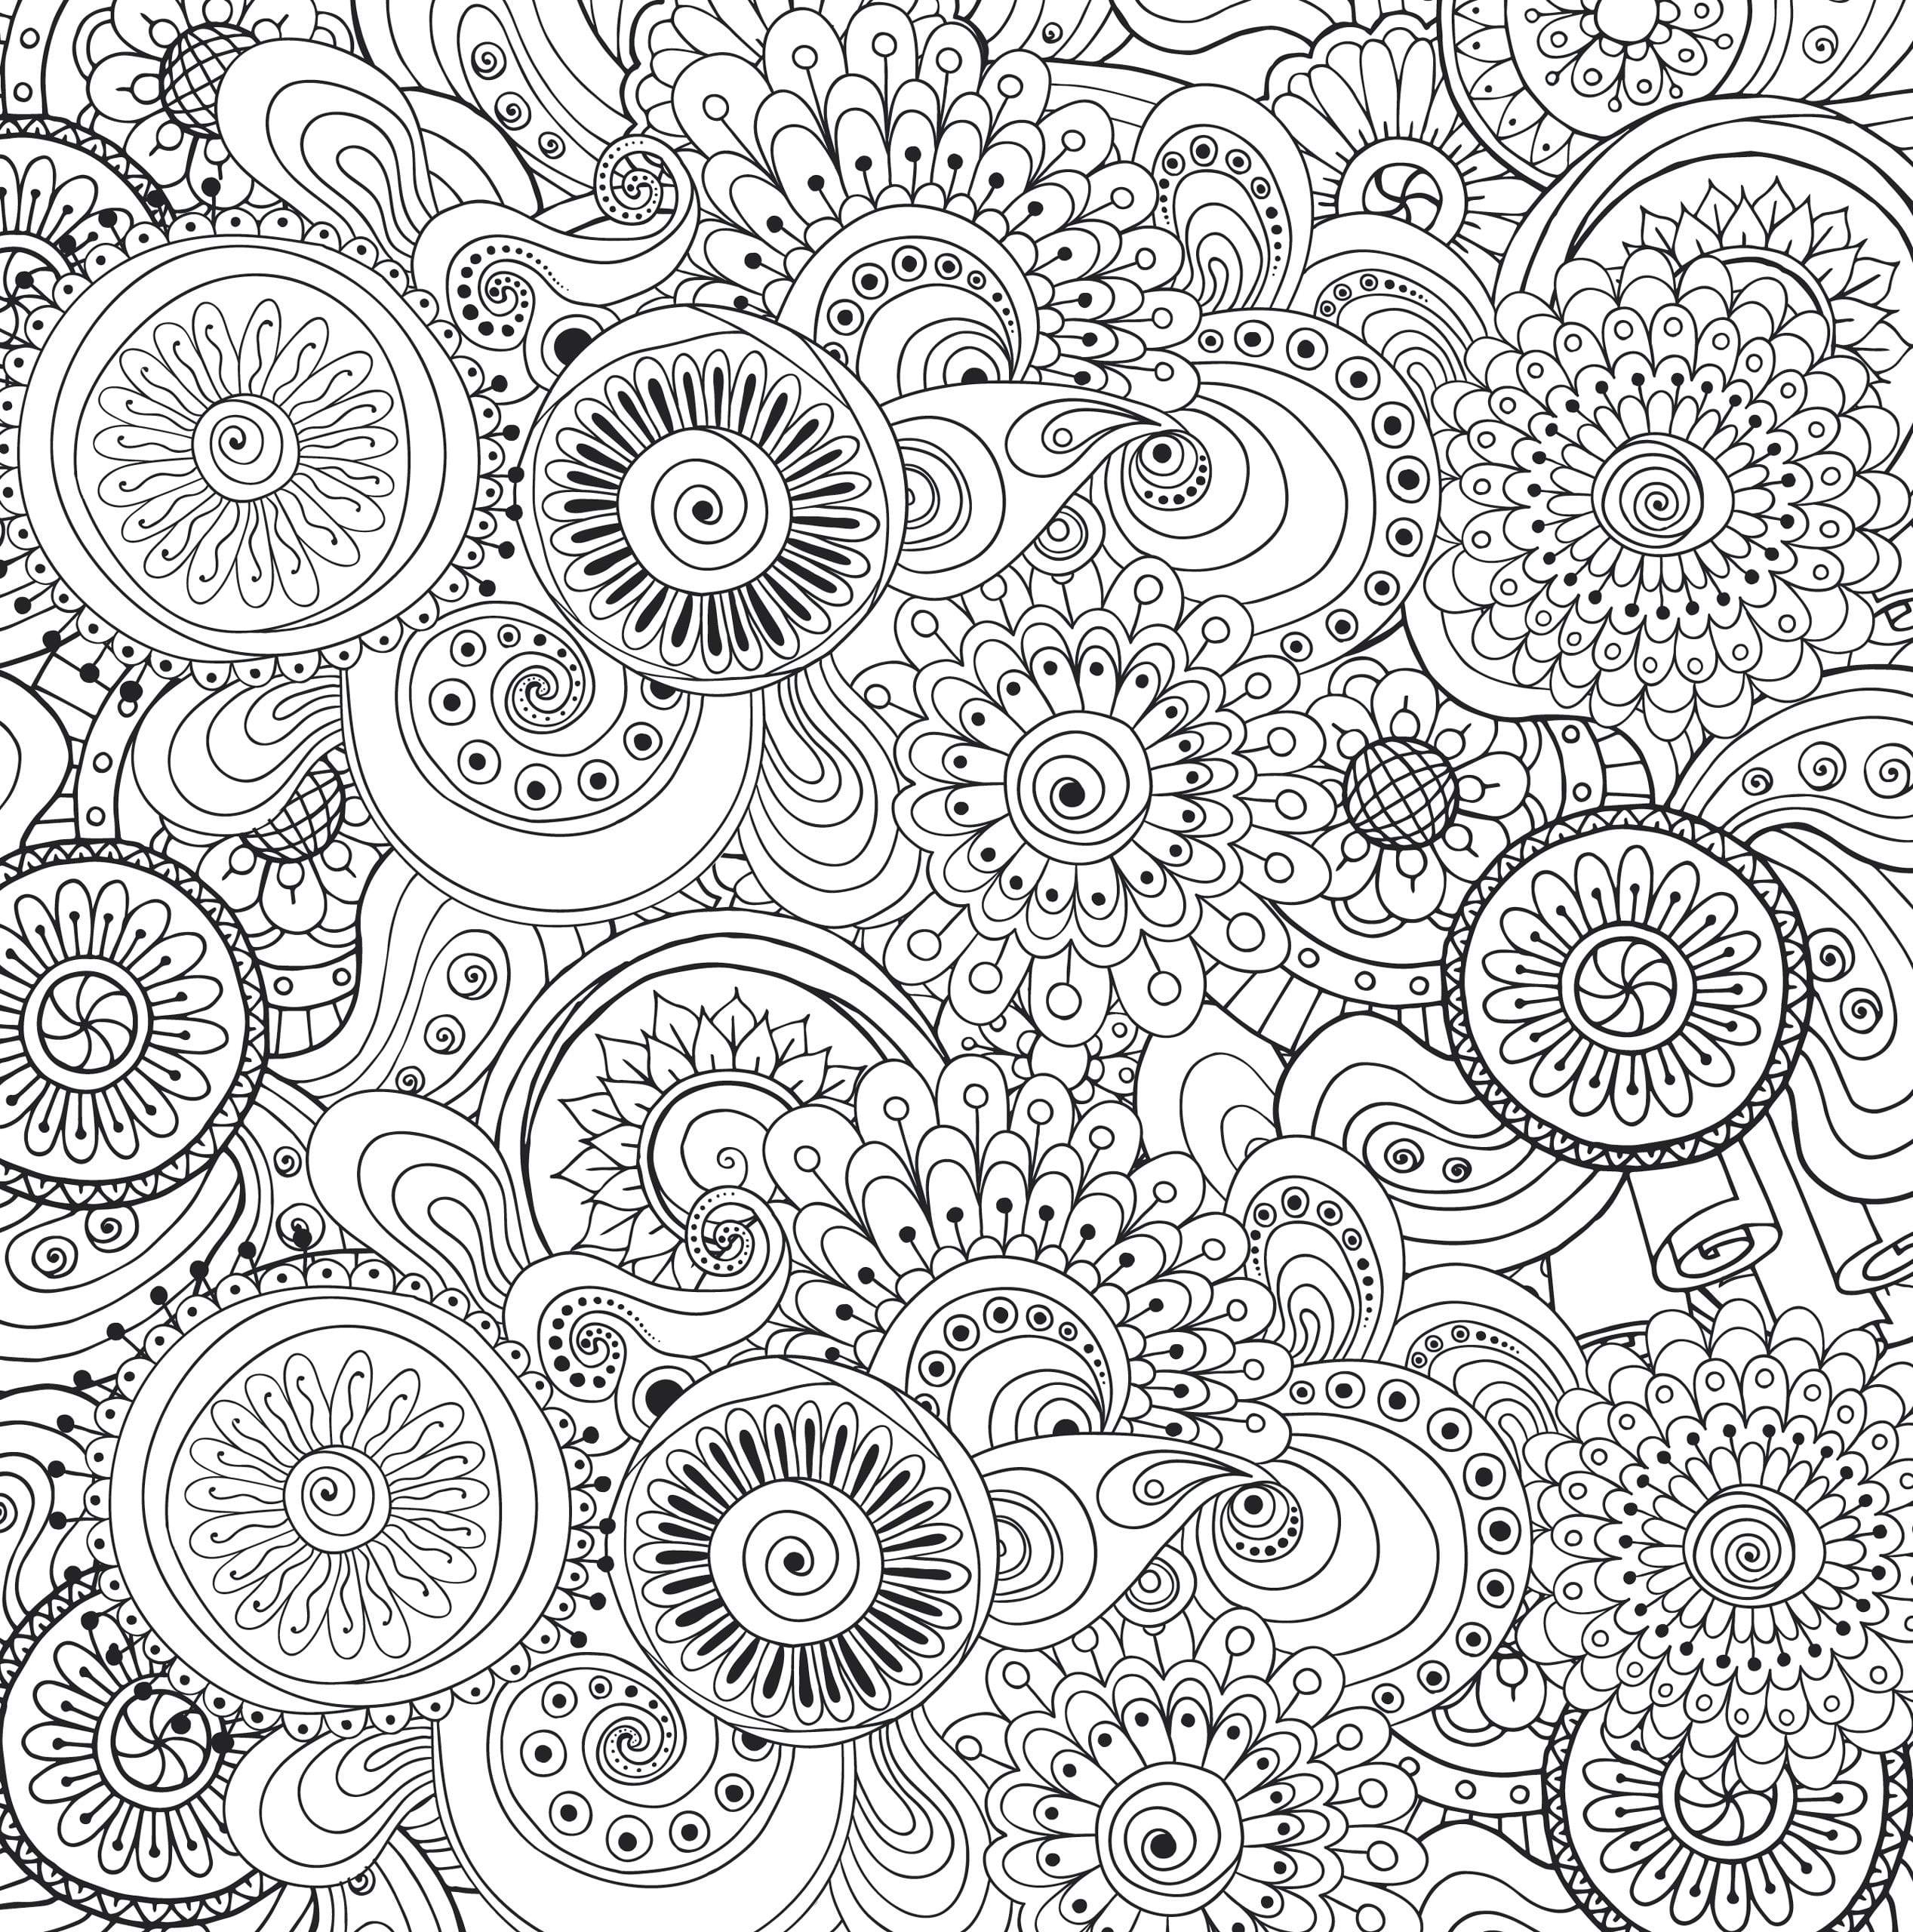 Coloring Book For Adults Printable Coloring Image Colouring Pages